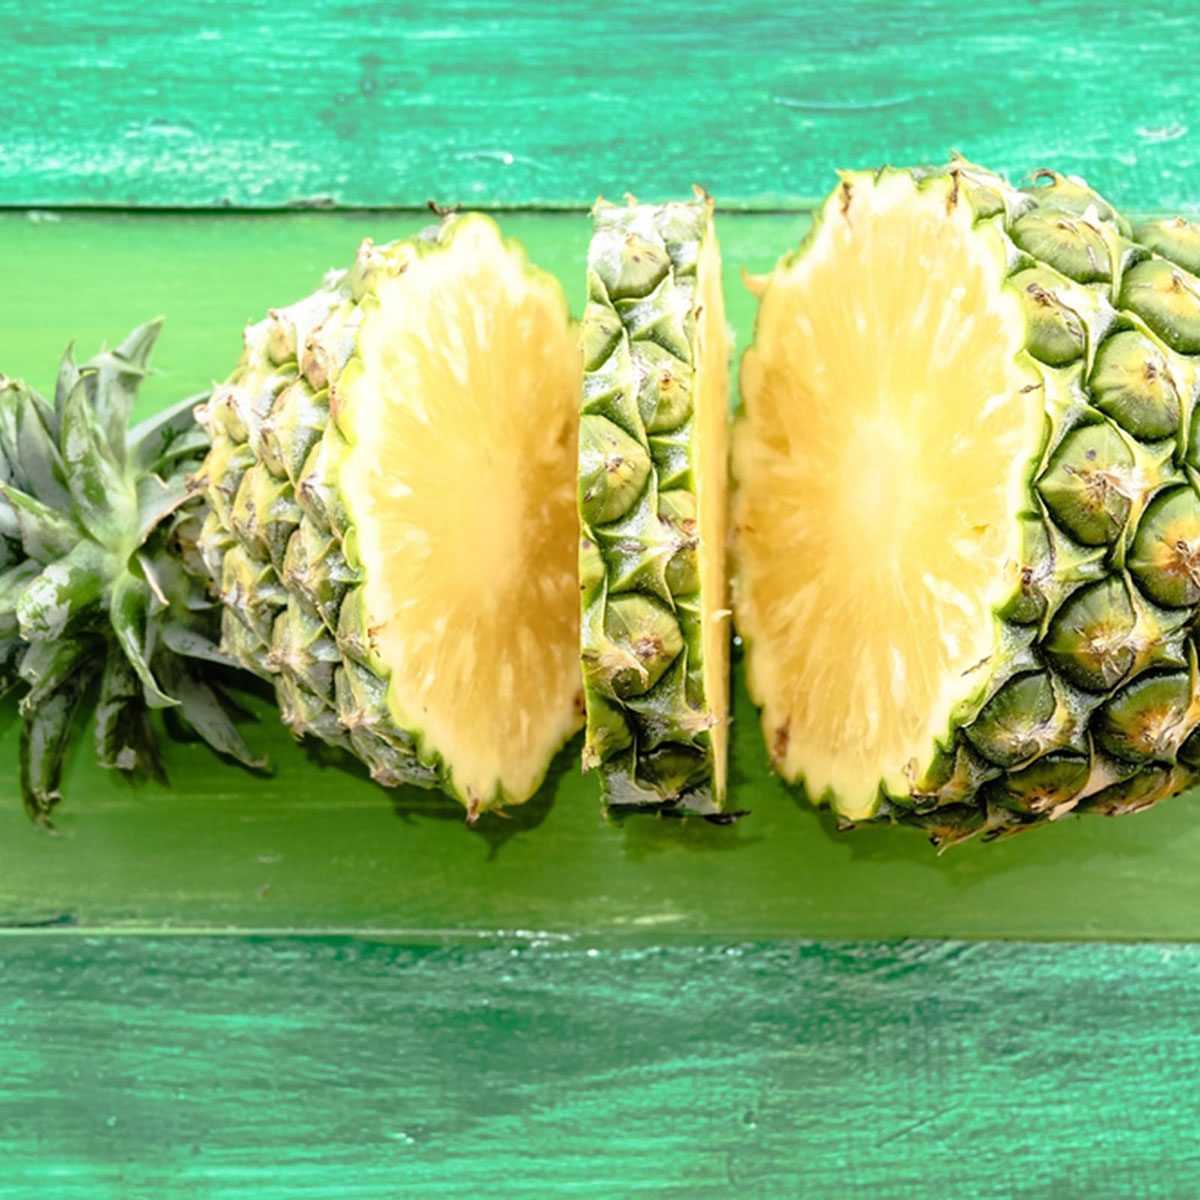 Pineapple cut to the core in two places